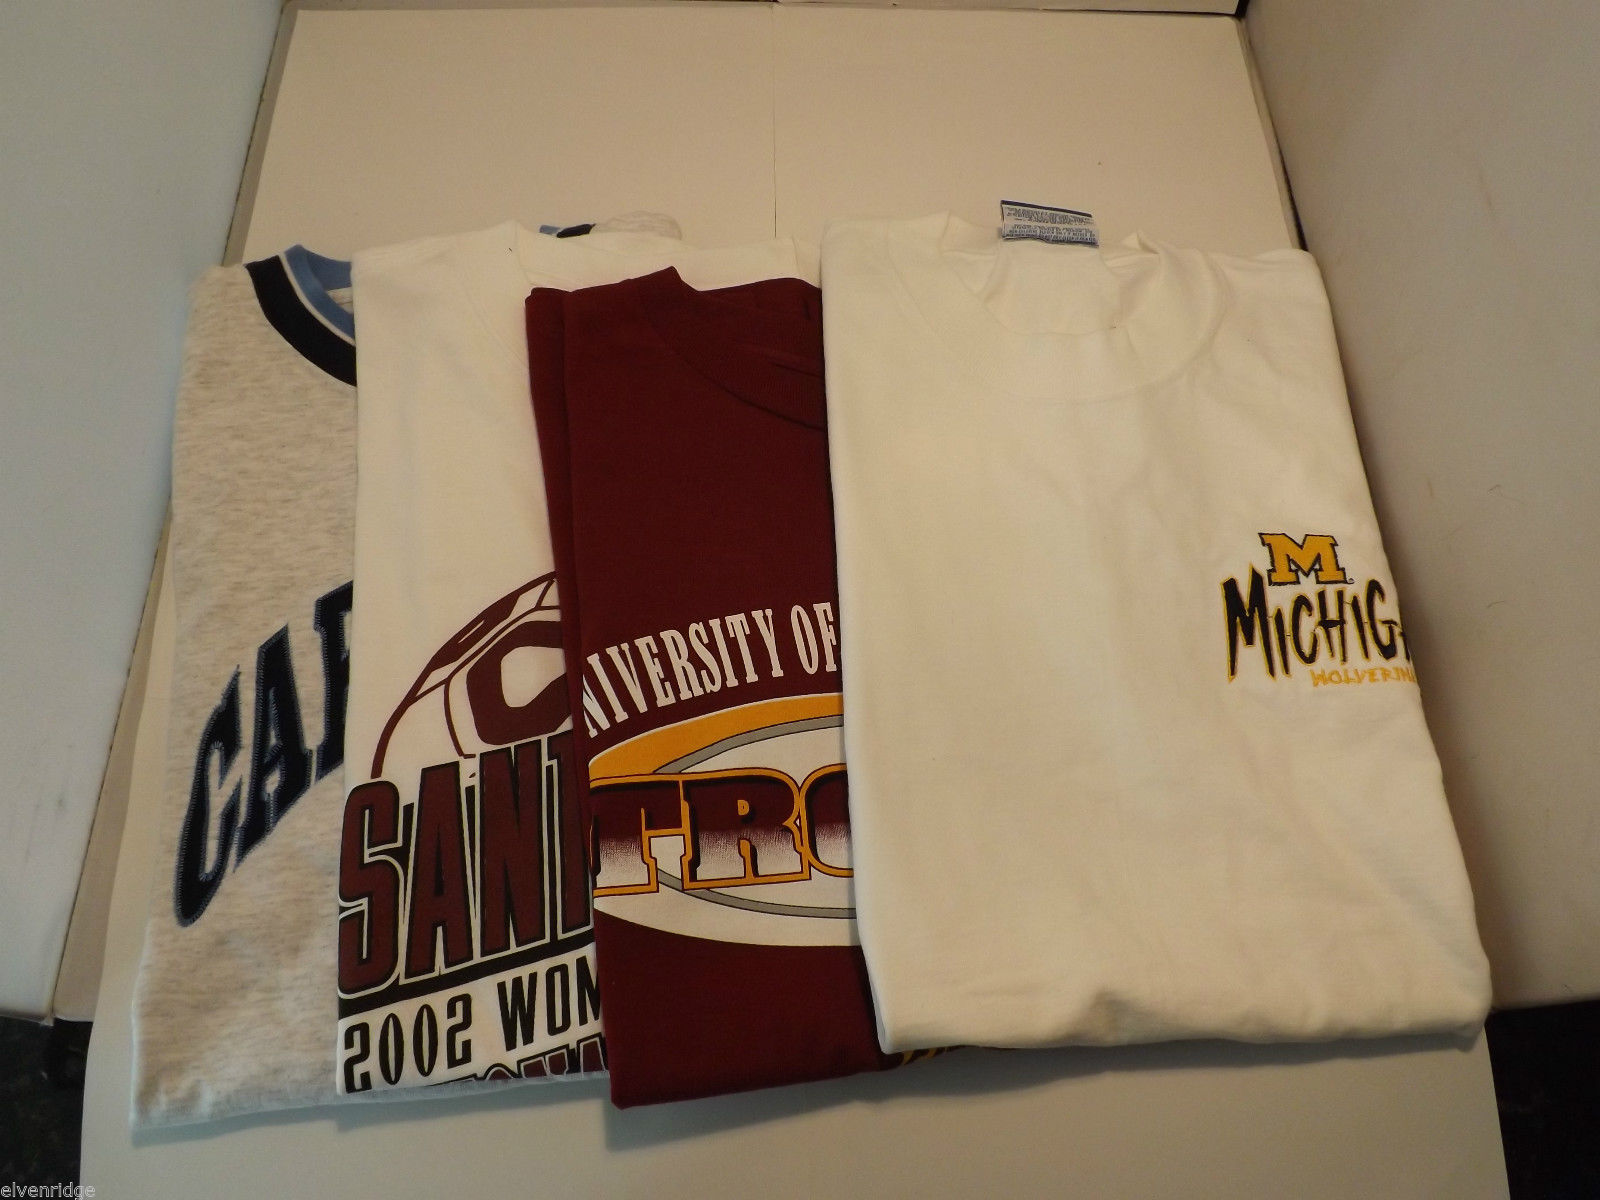 Lot of 4 University Sports T-Shirts Size XL/XXL